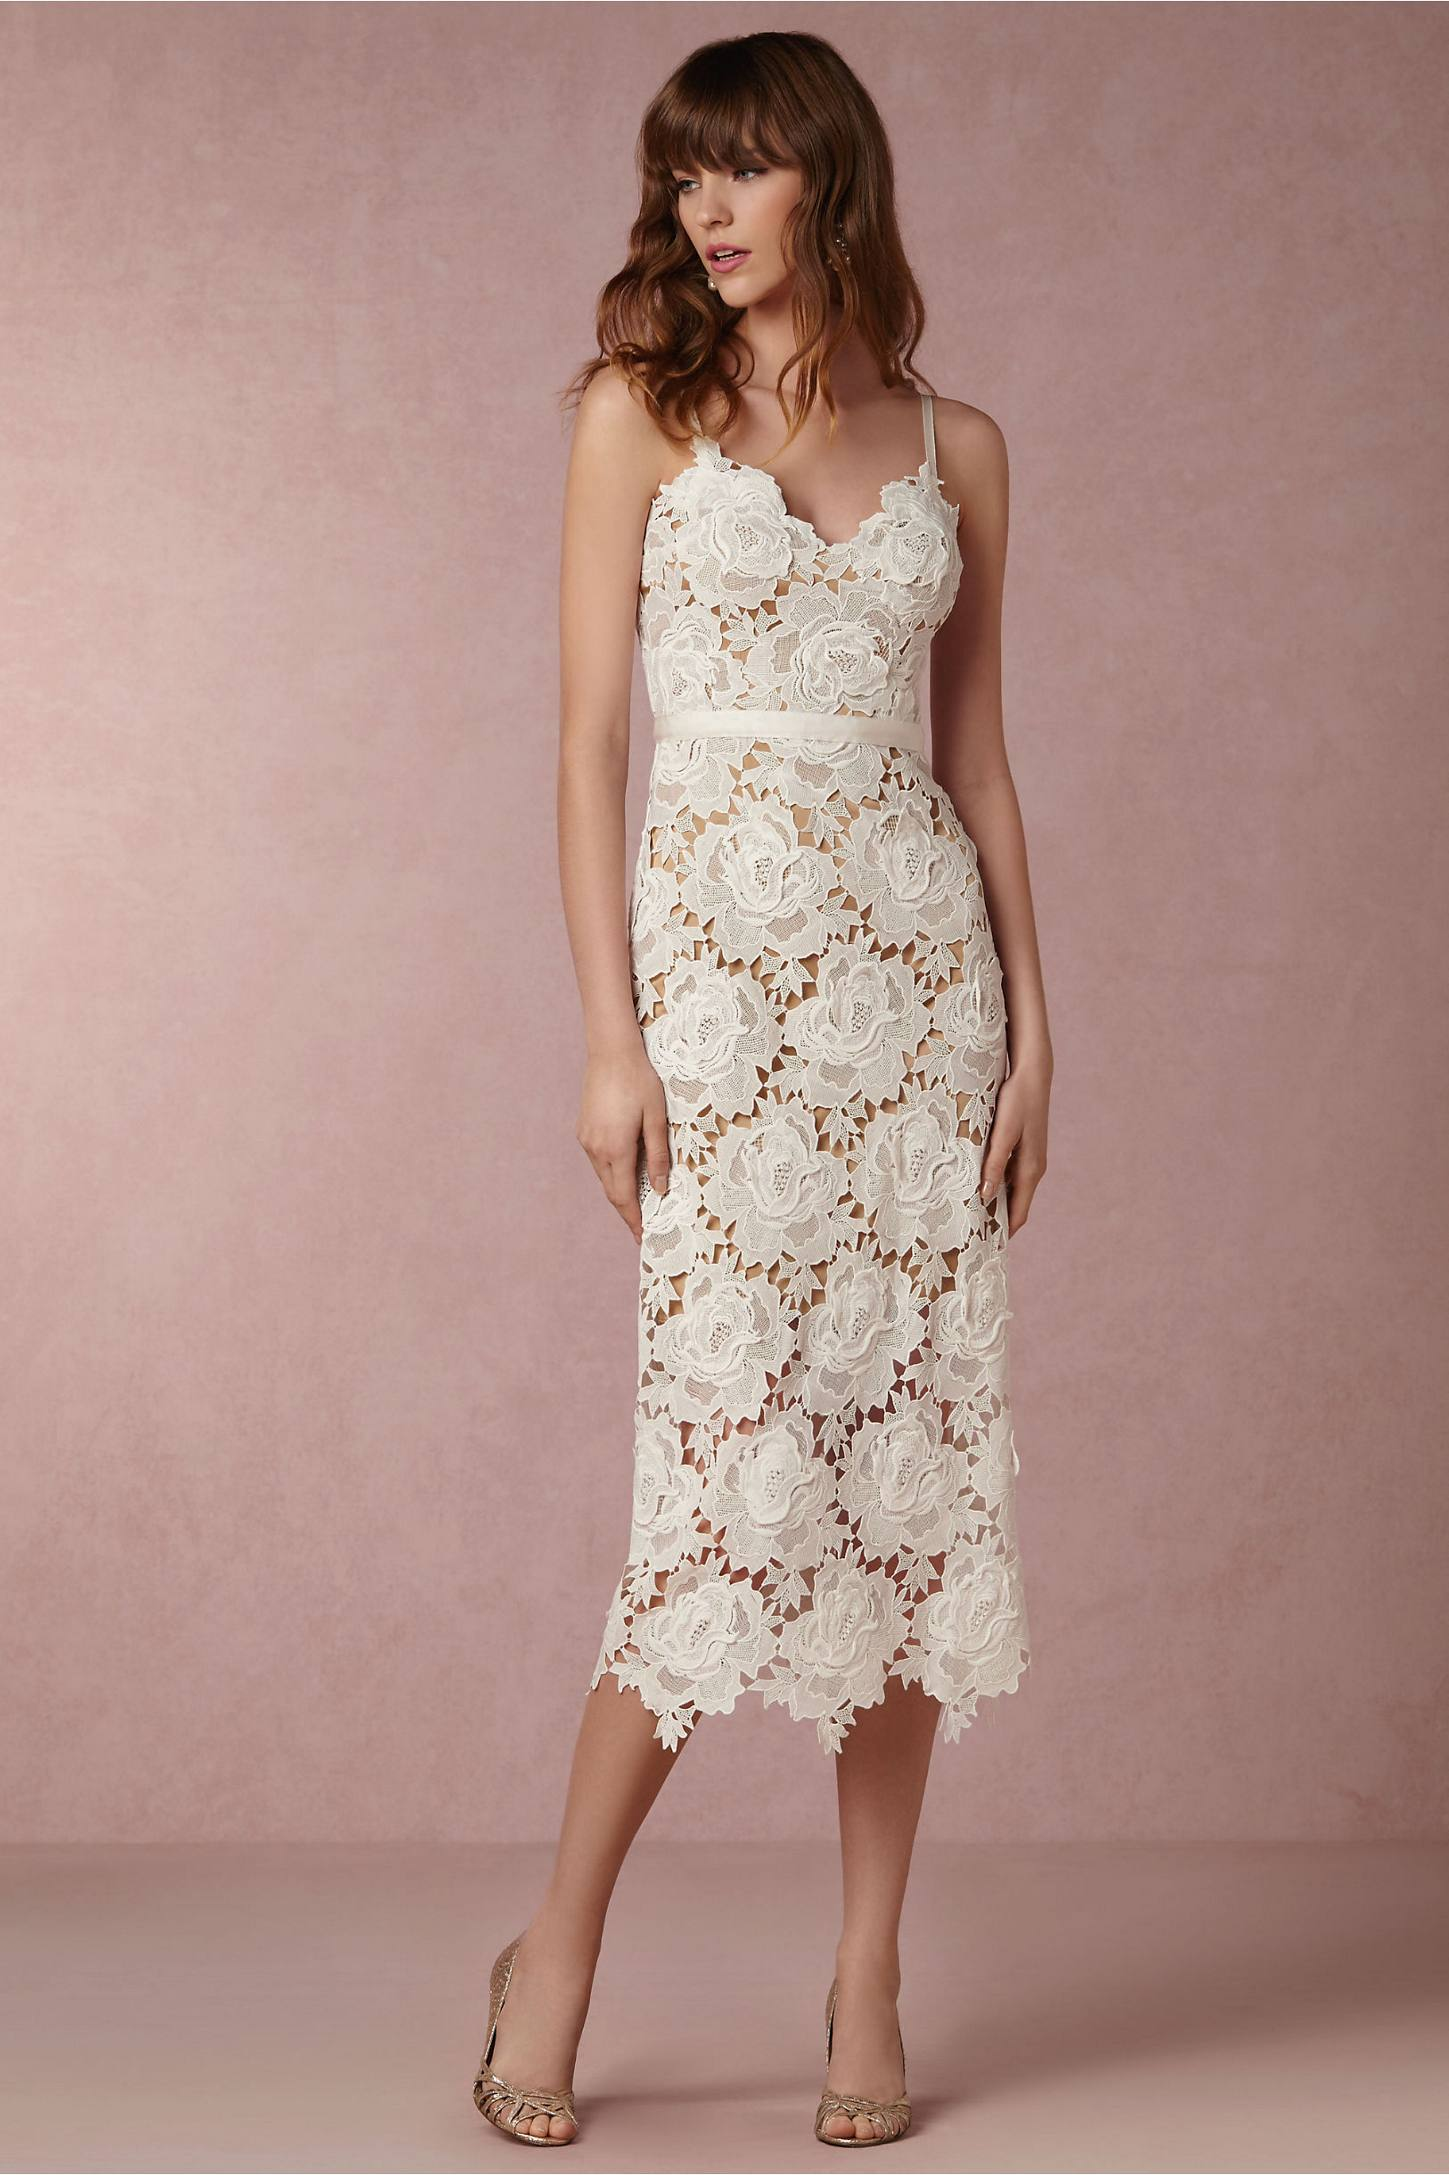 Frida dress anthropologie for Young wedding guest dresses